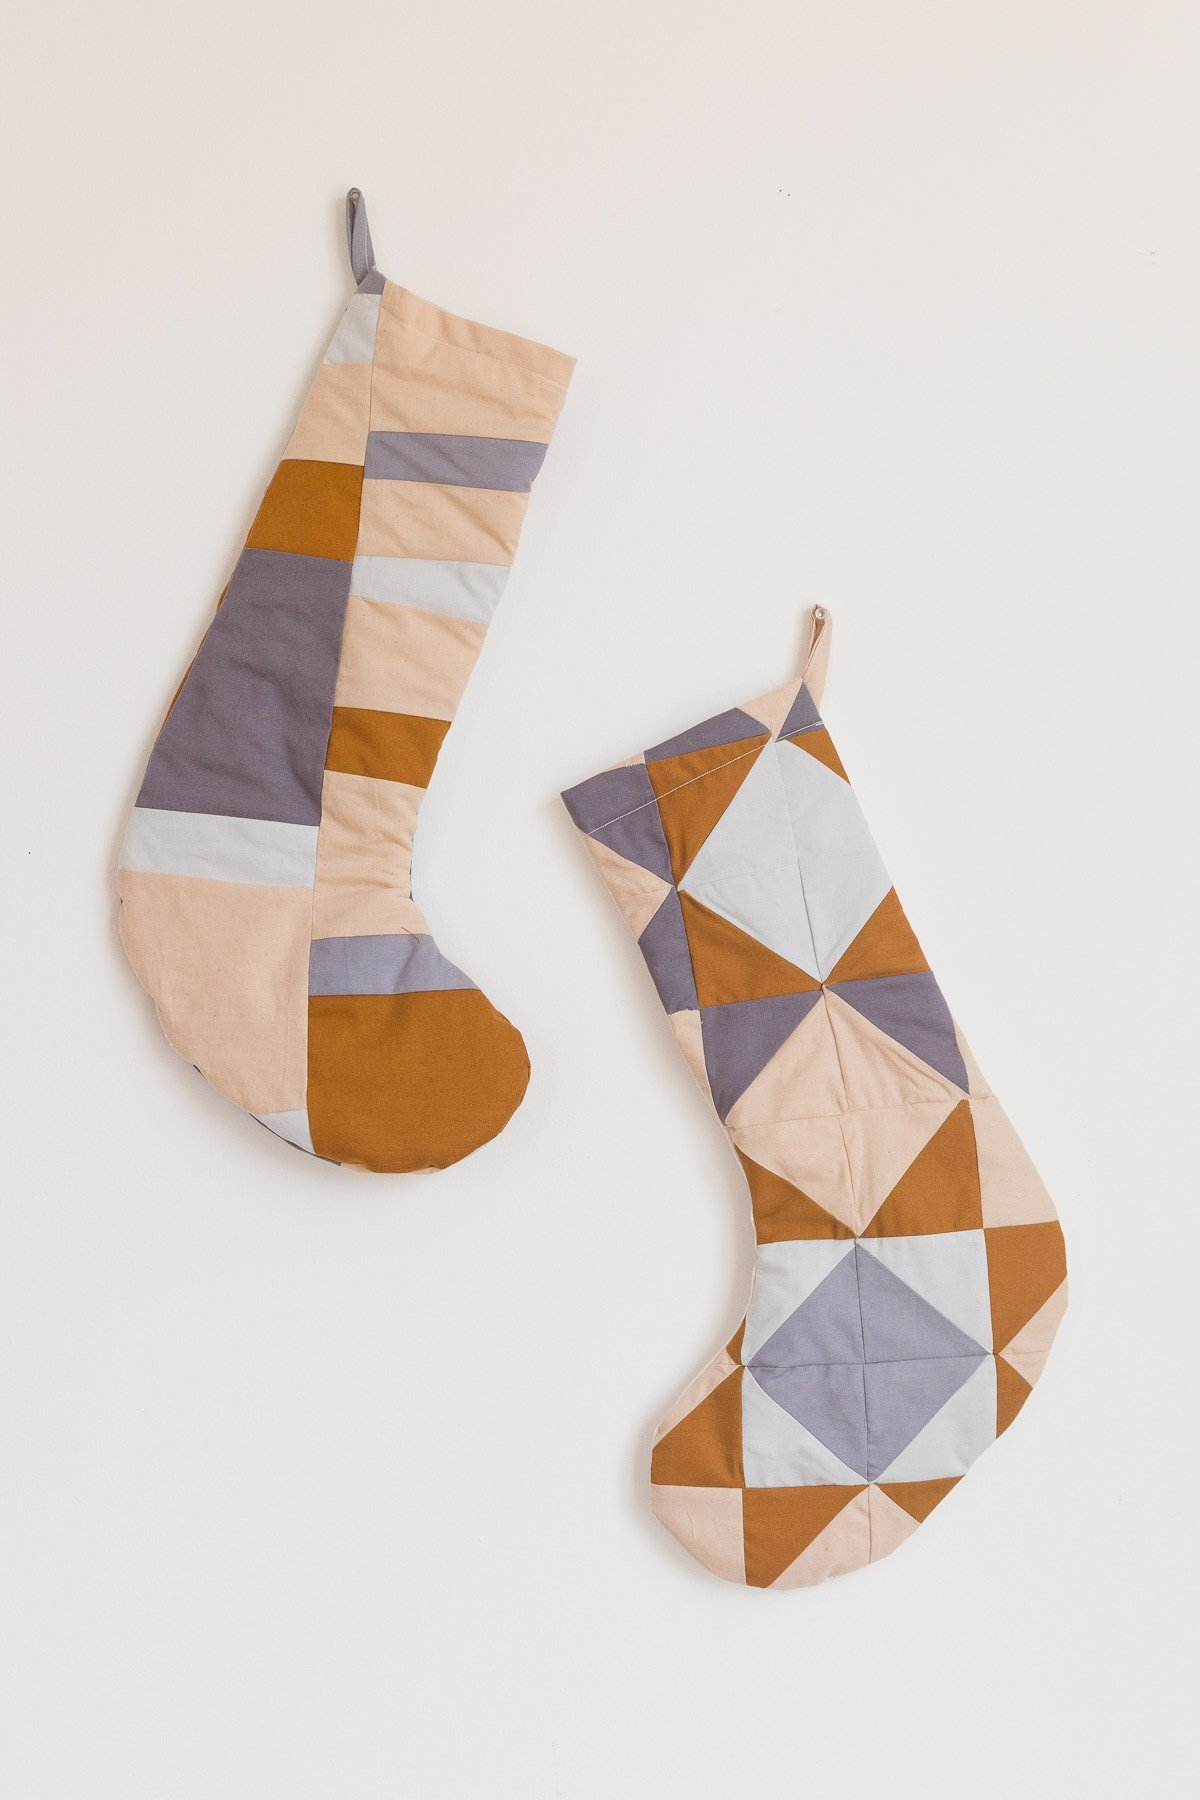 Quilted Christmas stockings in neutral, earthy colors.